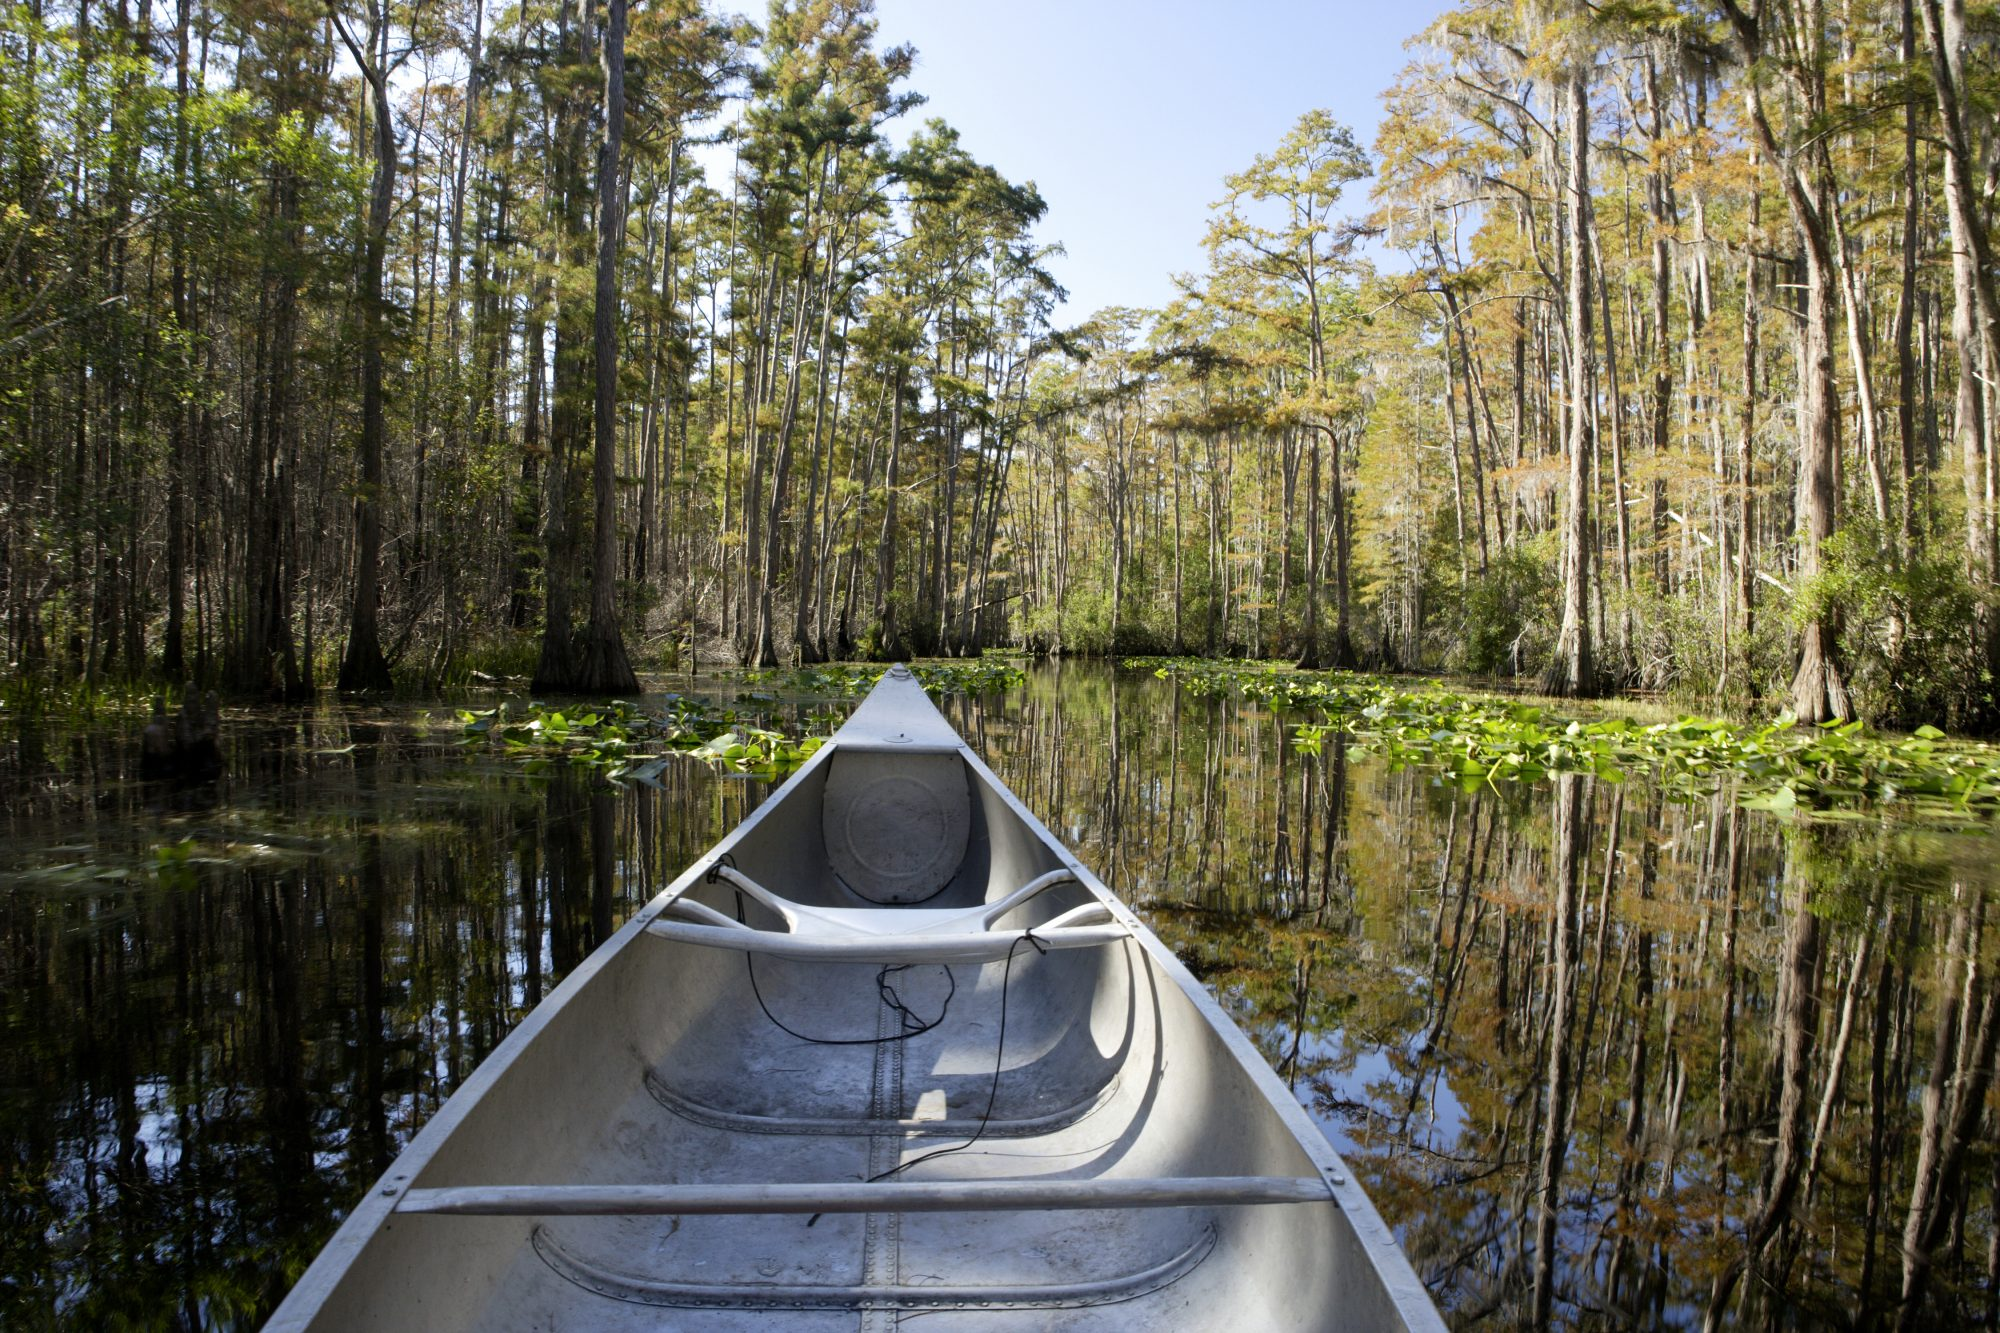 Southern Campgrounds Okefenokee National Wildlife Refuge, GA